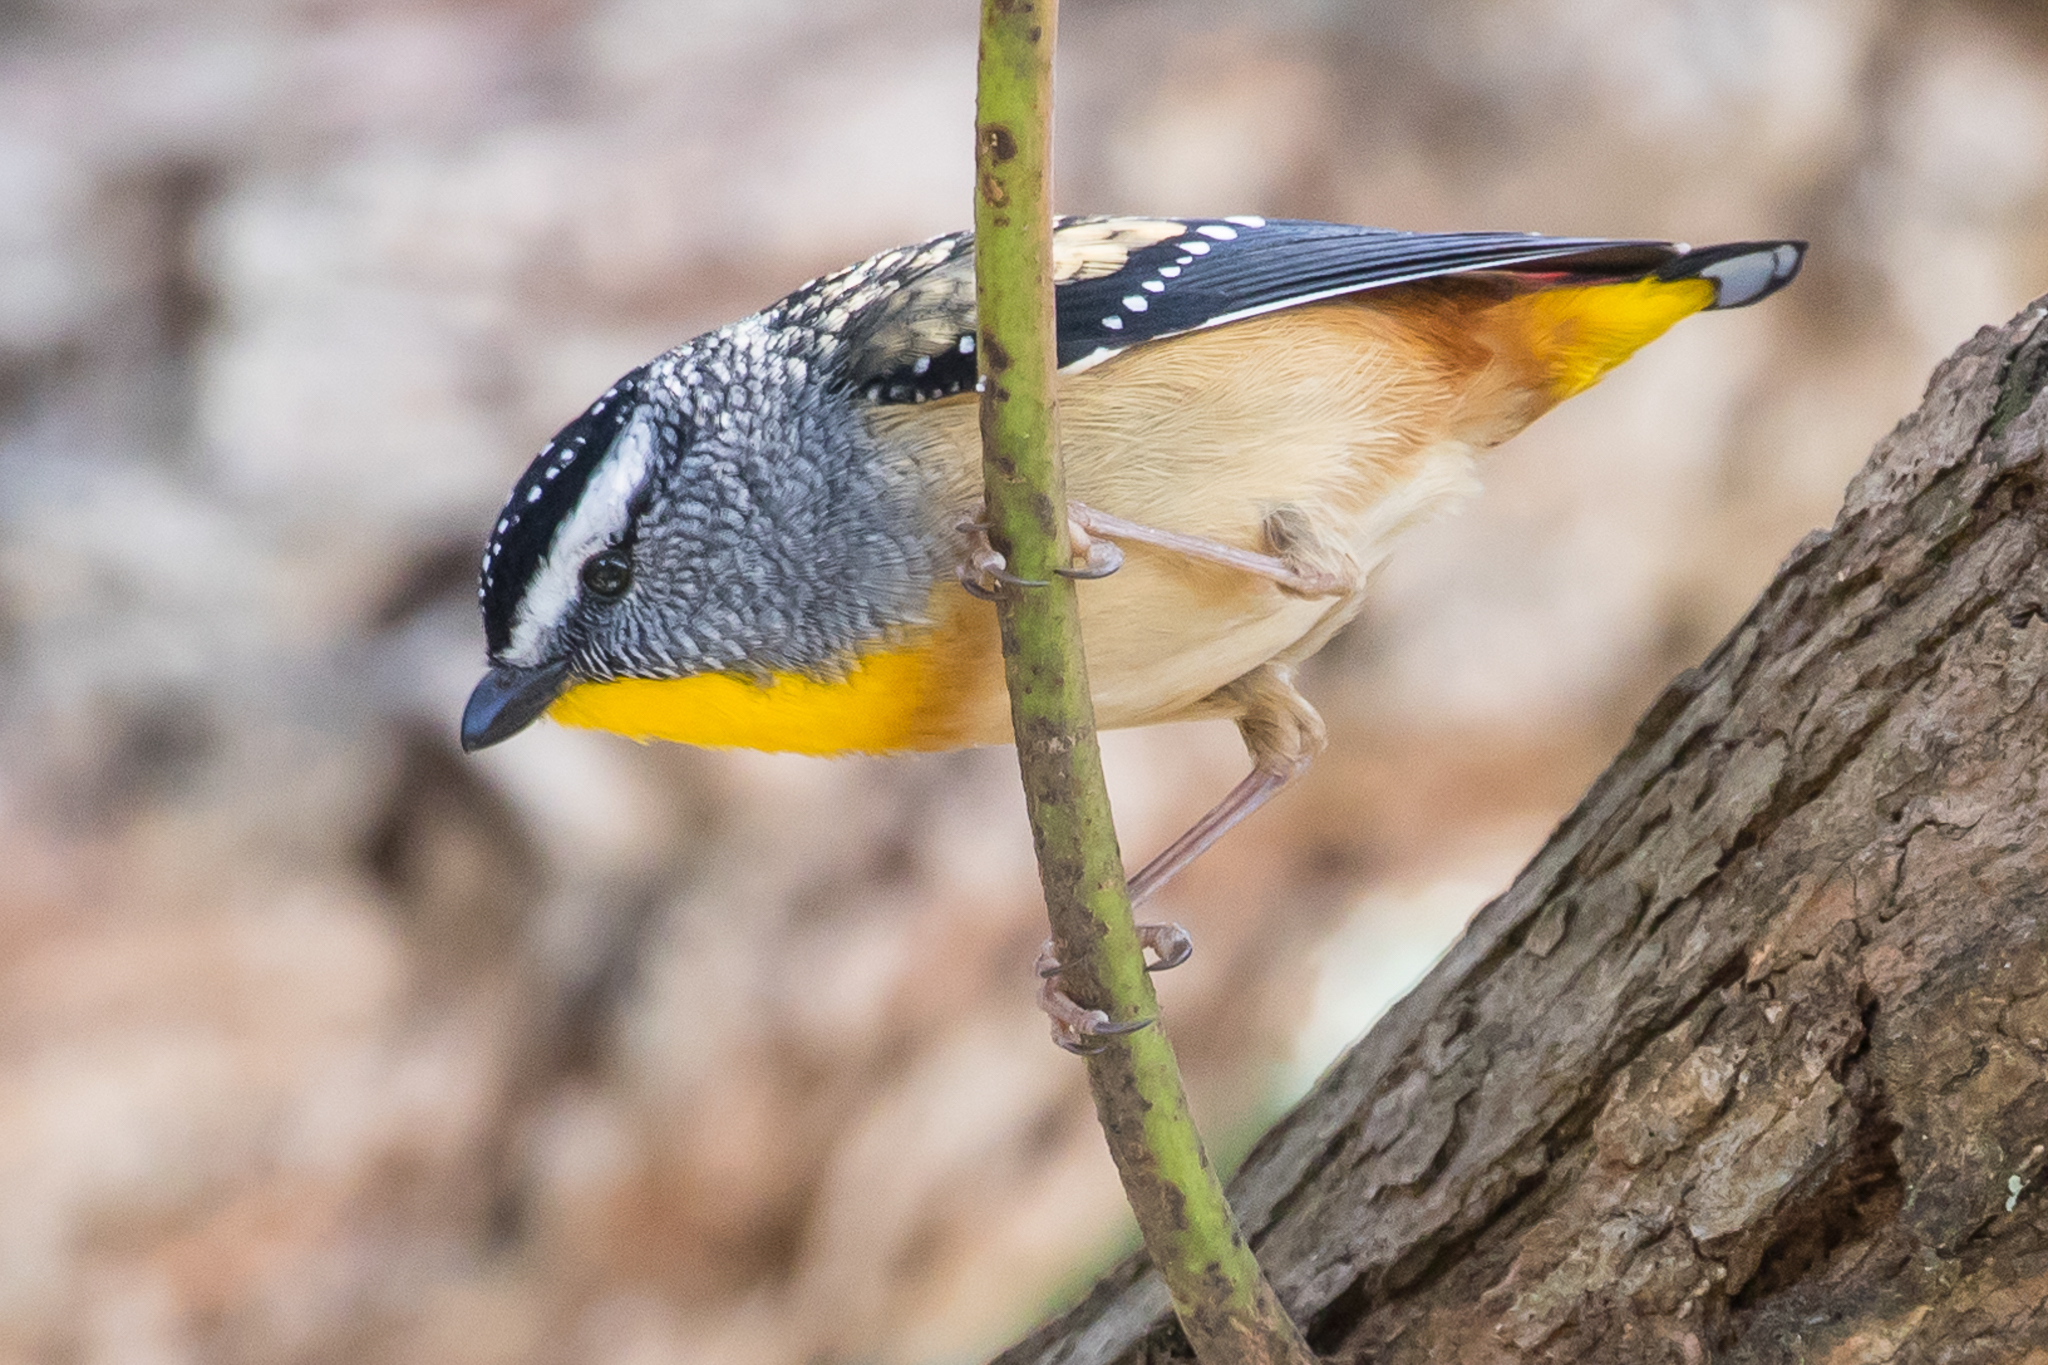 Spotted Pardalotes frequent the bush and the forests of Morton National Park. Some times, like this bird, Spotted Pardalotes are seen close to the beach. They feed on insects and manna.